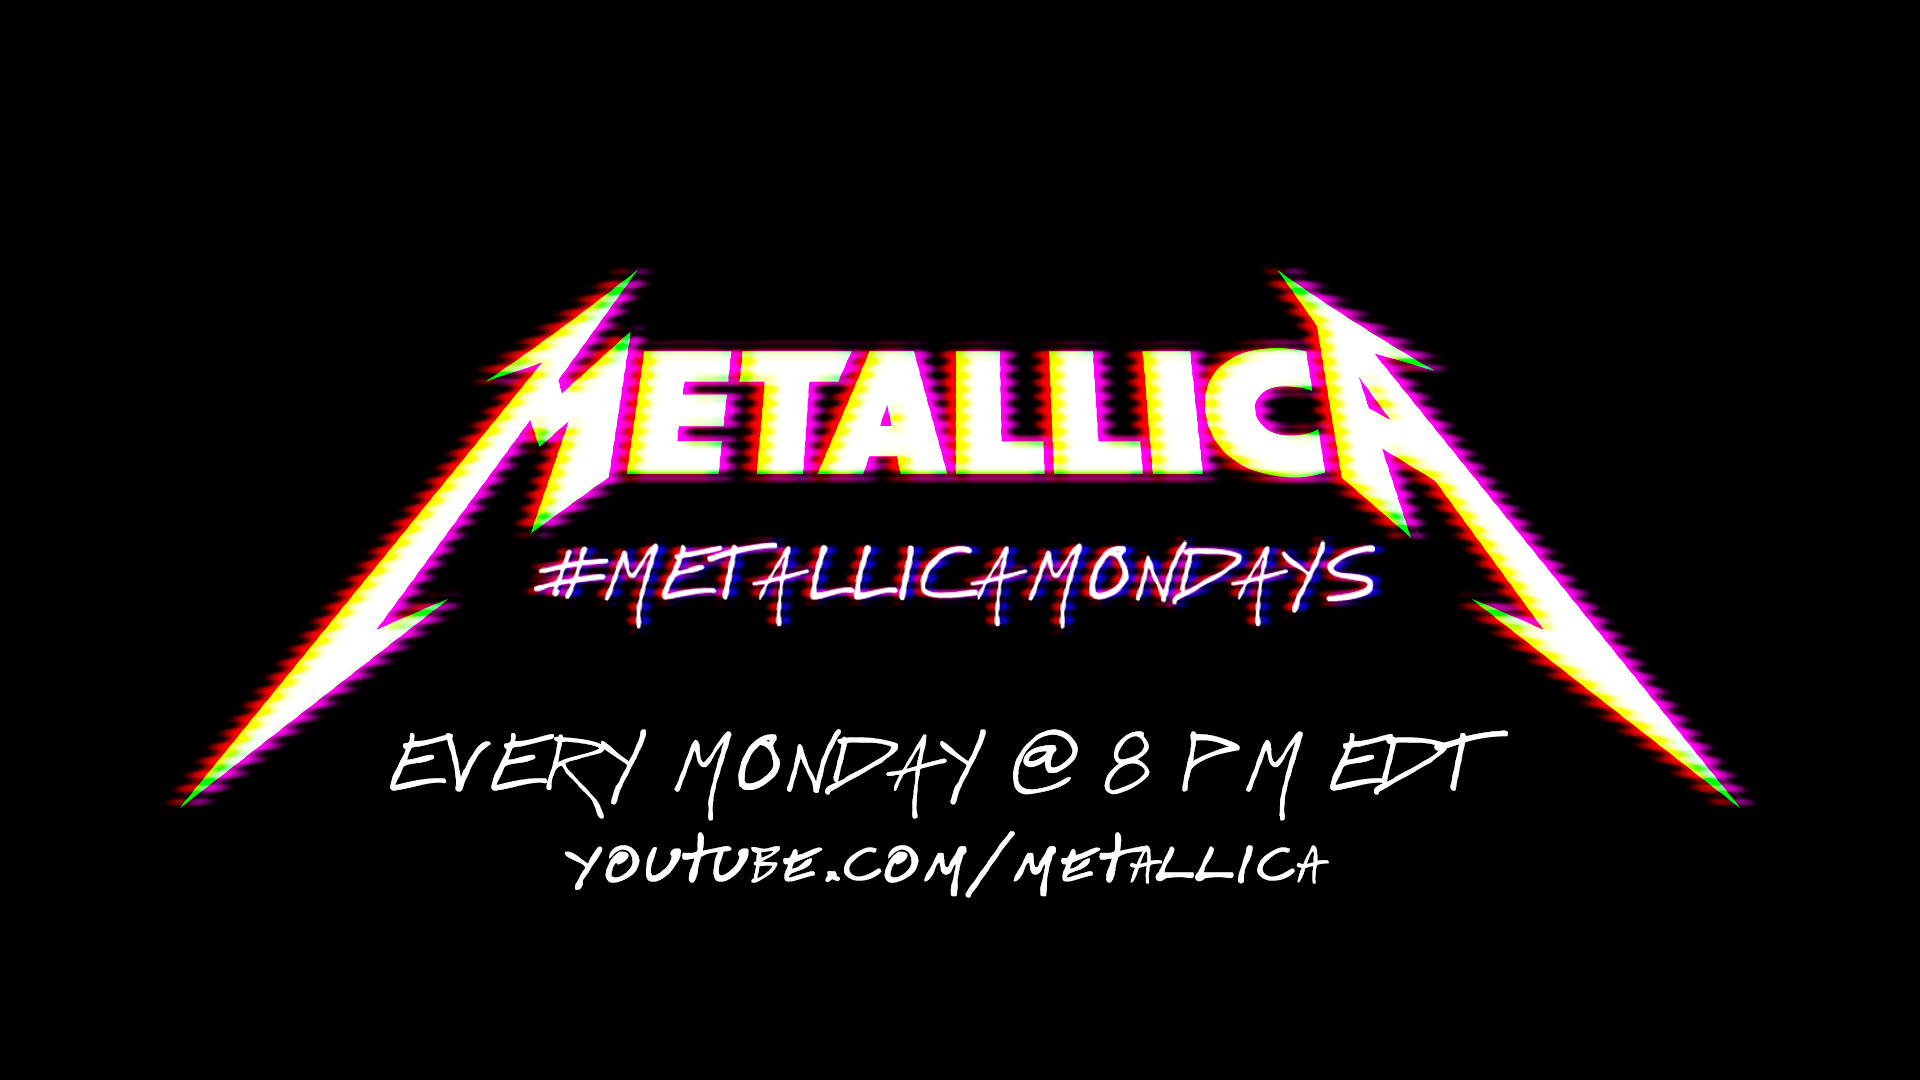 #MetallicaMondays: Free, Weekly Concert Streaming Series